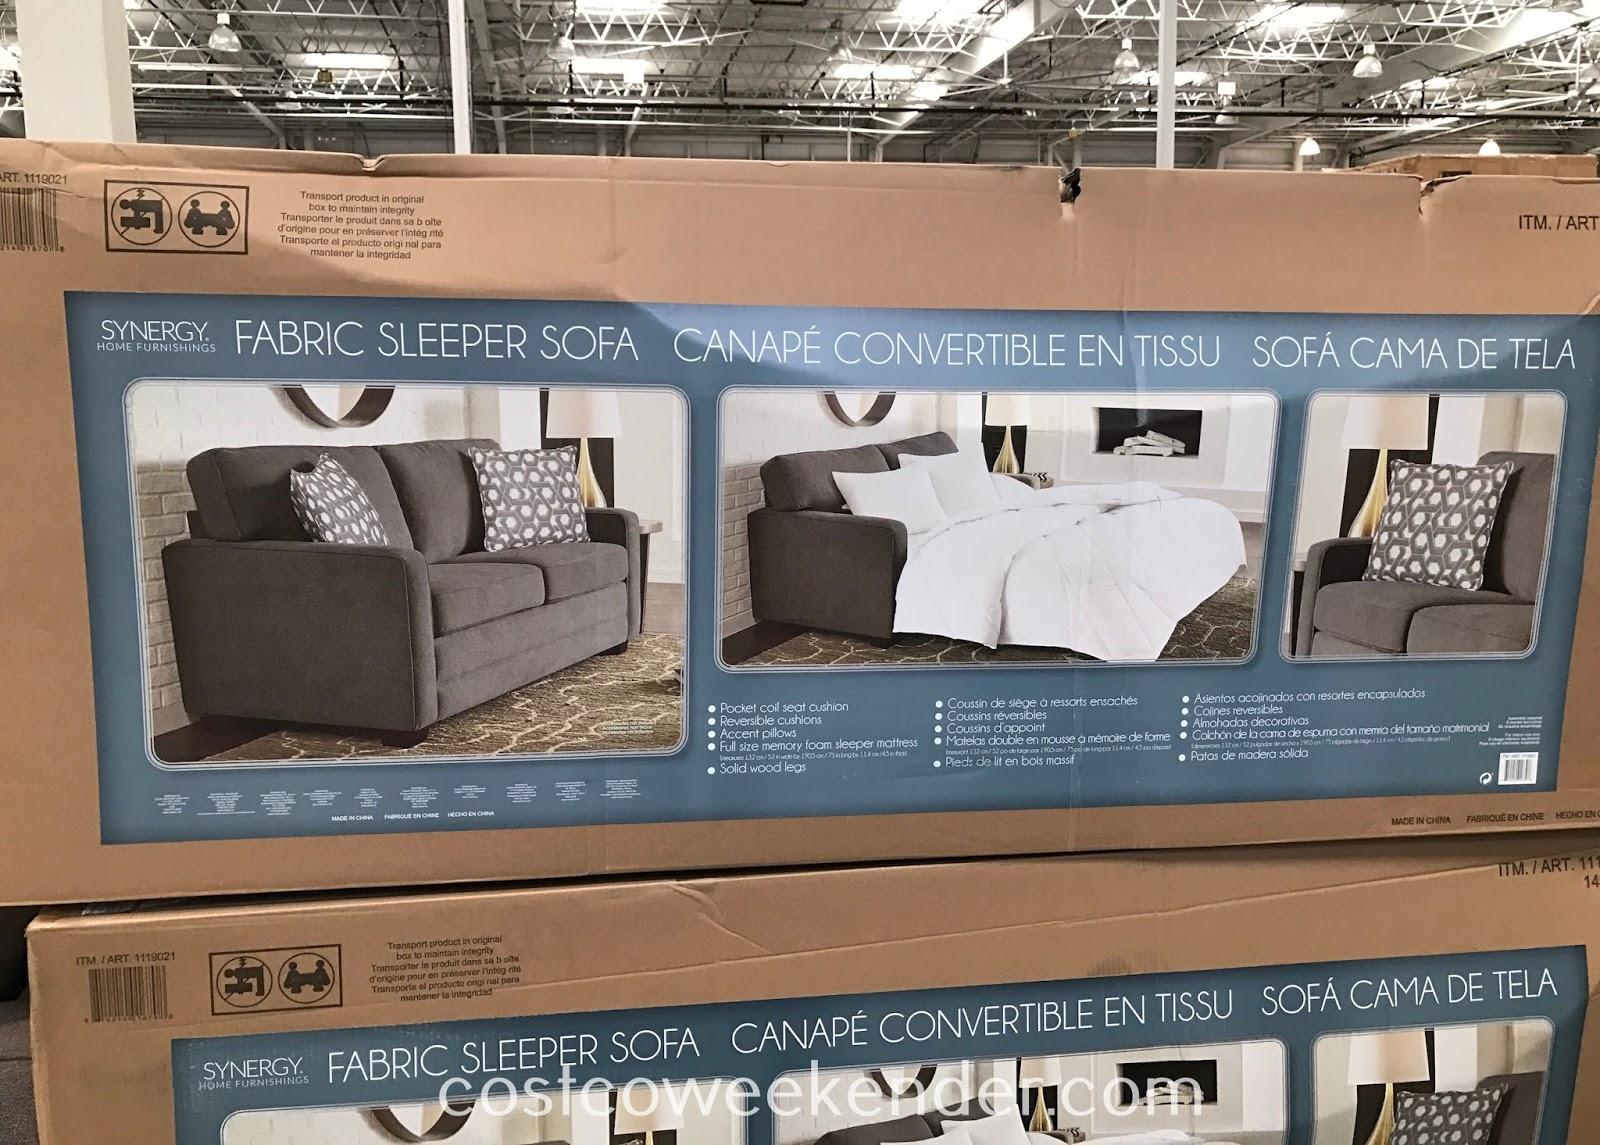 Costco 1119021 - Synergy Home Fabric Sleeper Sofa can be converted into a full size bed